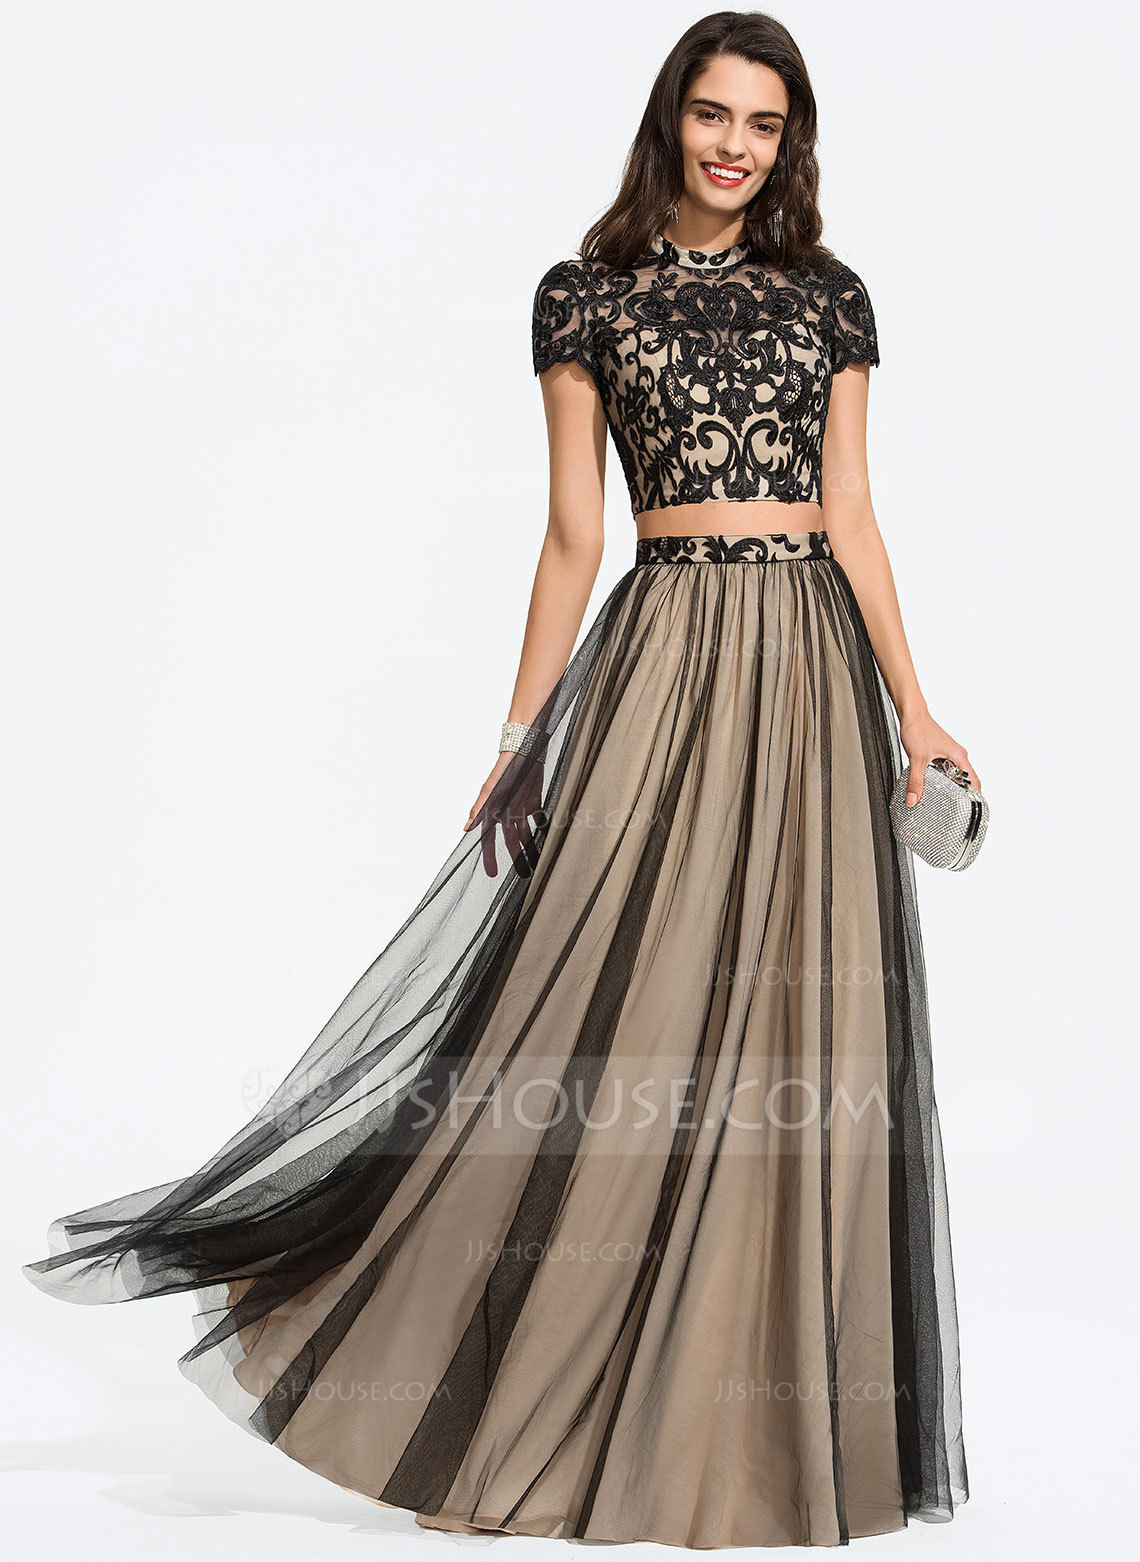 A-Line Scoop Neck Floor-Length Tulle Prom Dresses